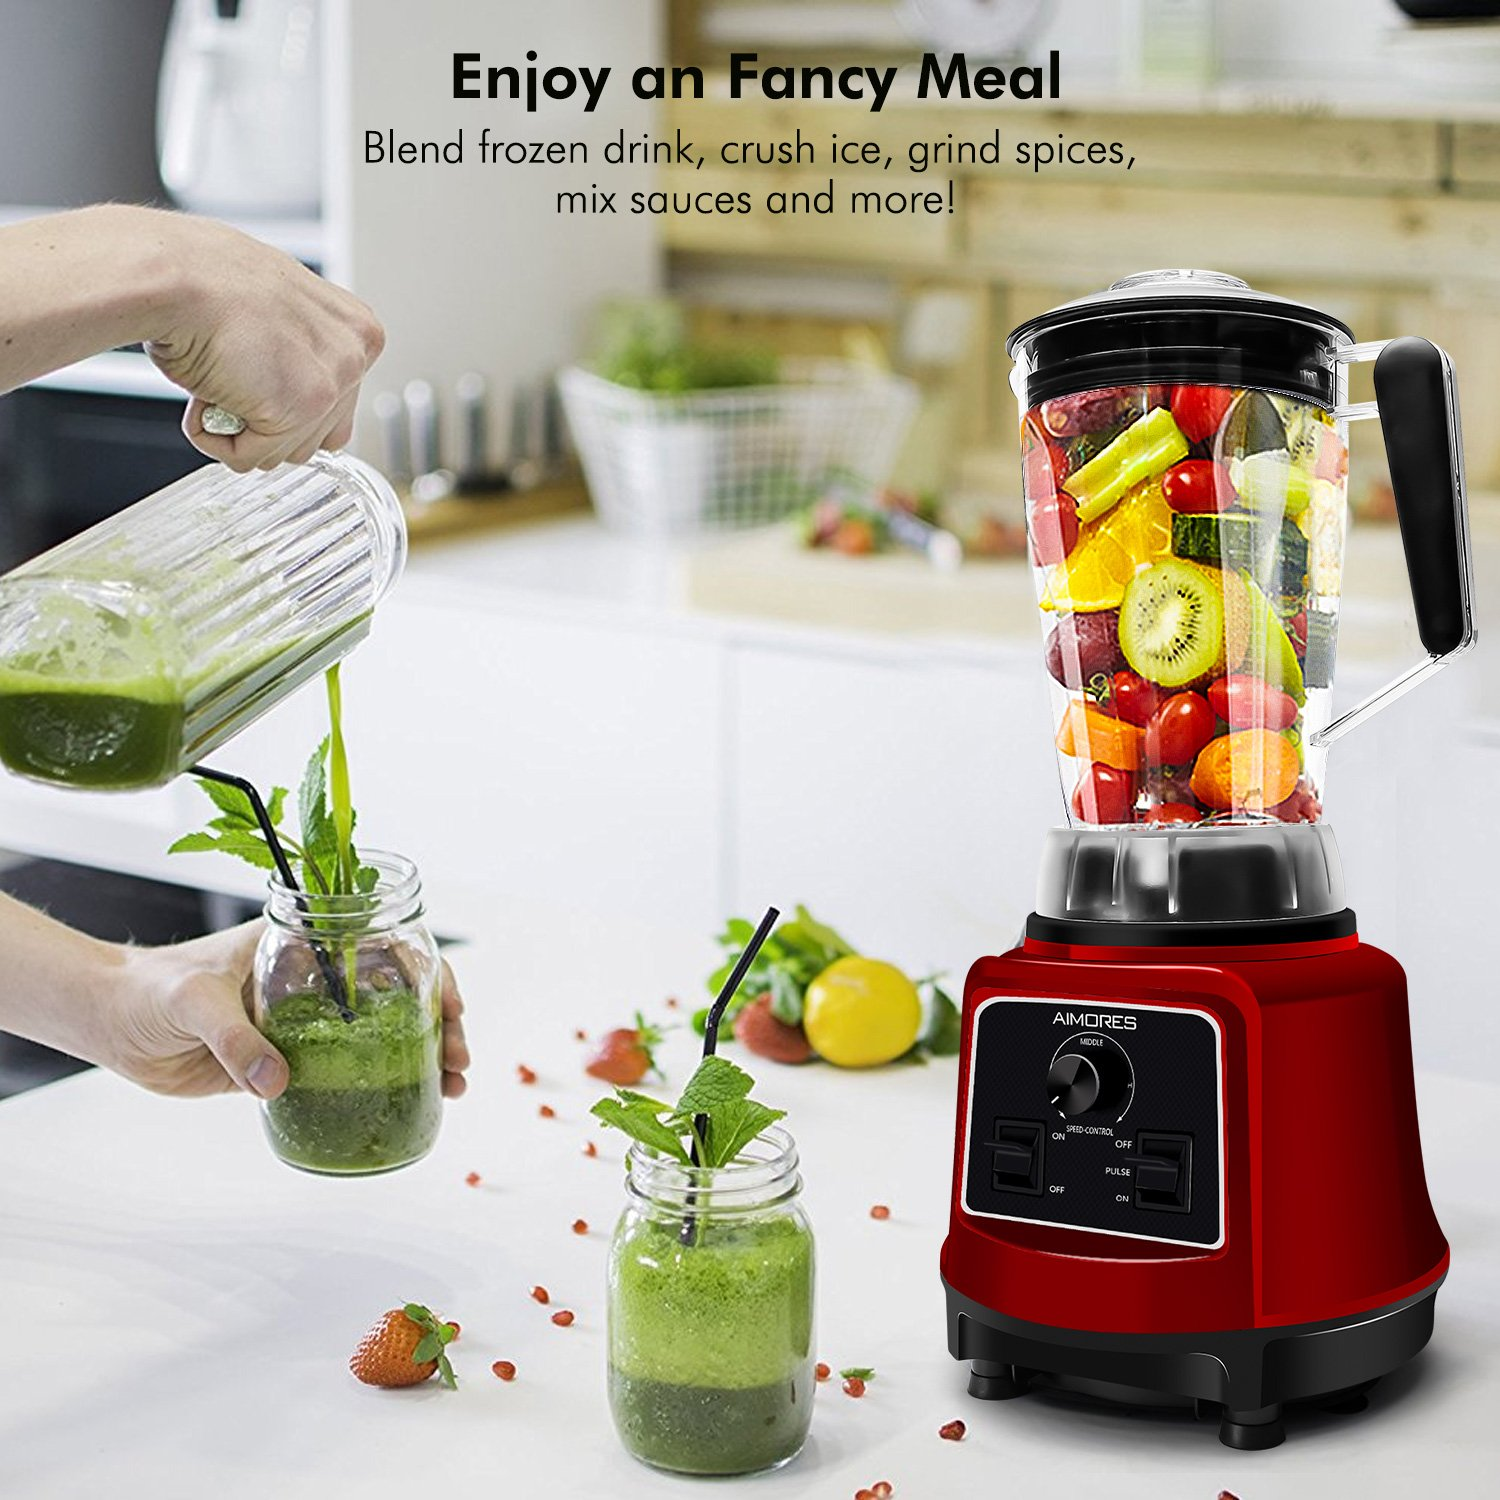 Commercial Blender Aimores for Smoothie   750z. High Speed Juicer, Ice Cream Maker   Optimized 6 Sharp Blades   Auto Clean & Simple Control   w/ Recipe & Tamper   ETL & FDA Certified (Red) by ISUN (Image #1)